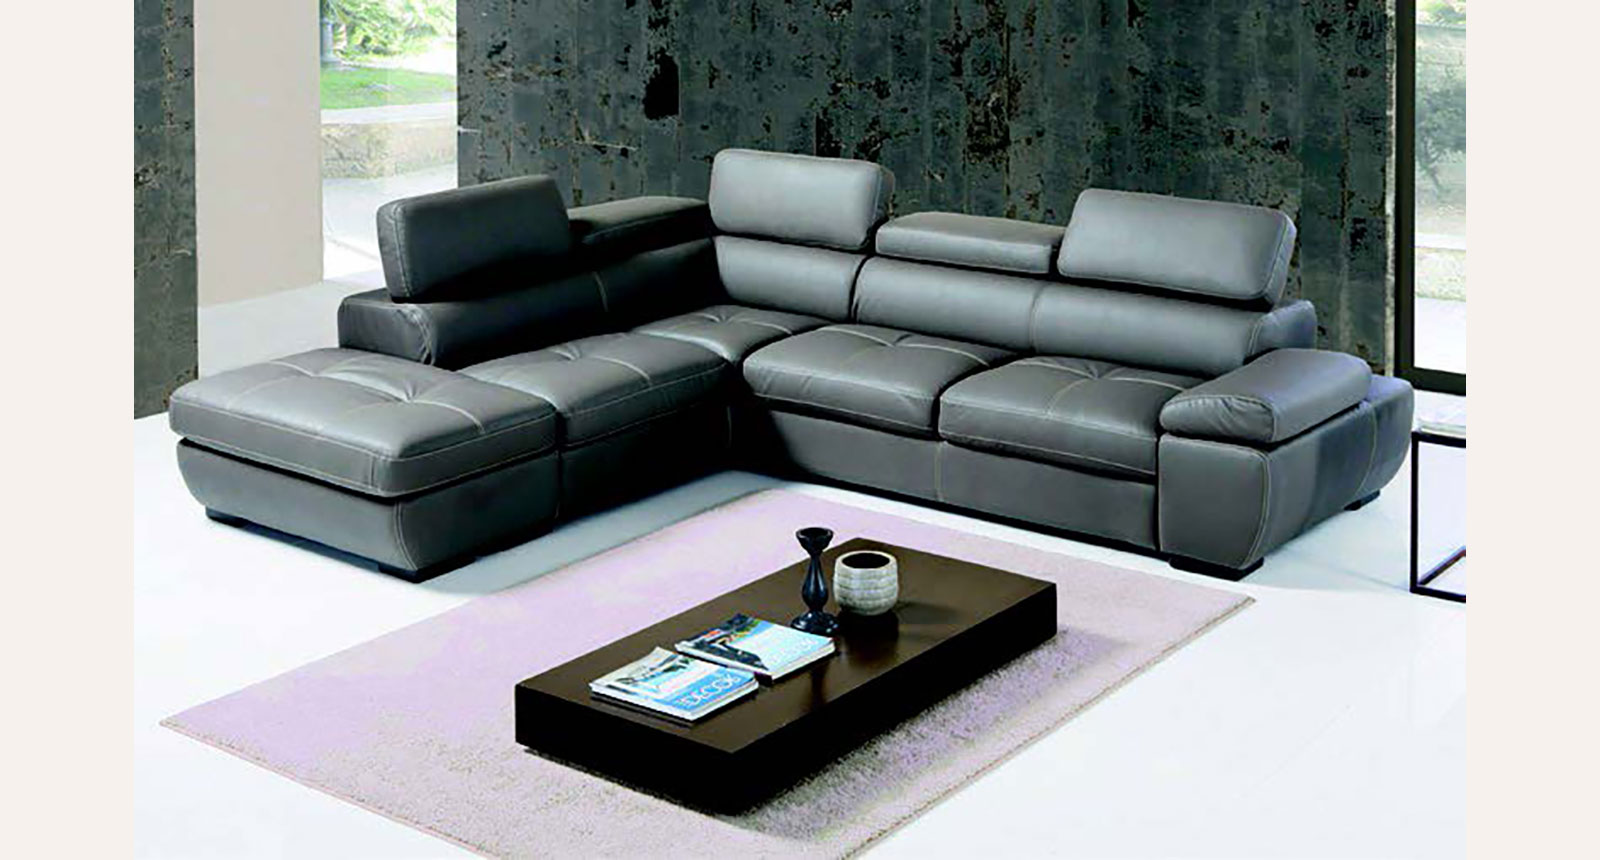 The prestigious upholstered sofas and armchairs by Euro Design